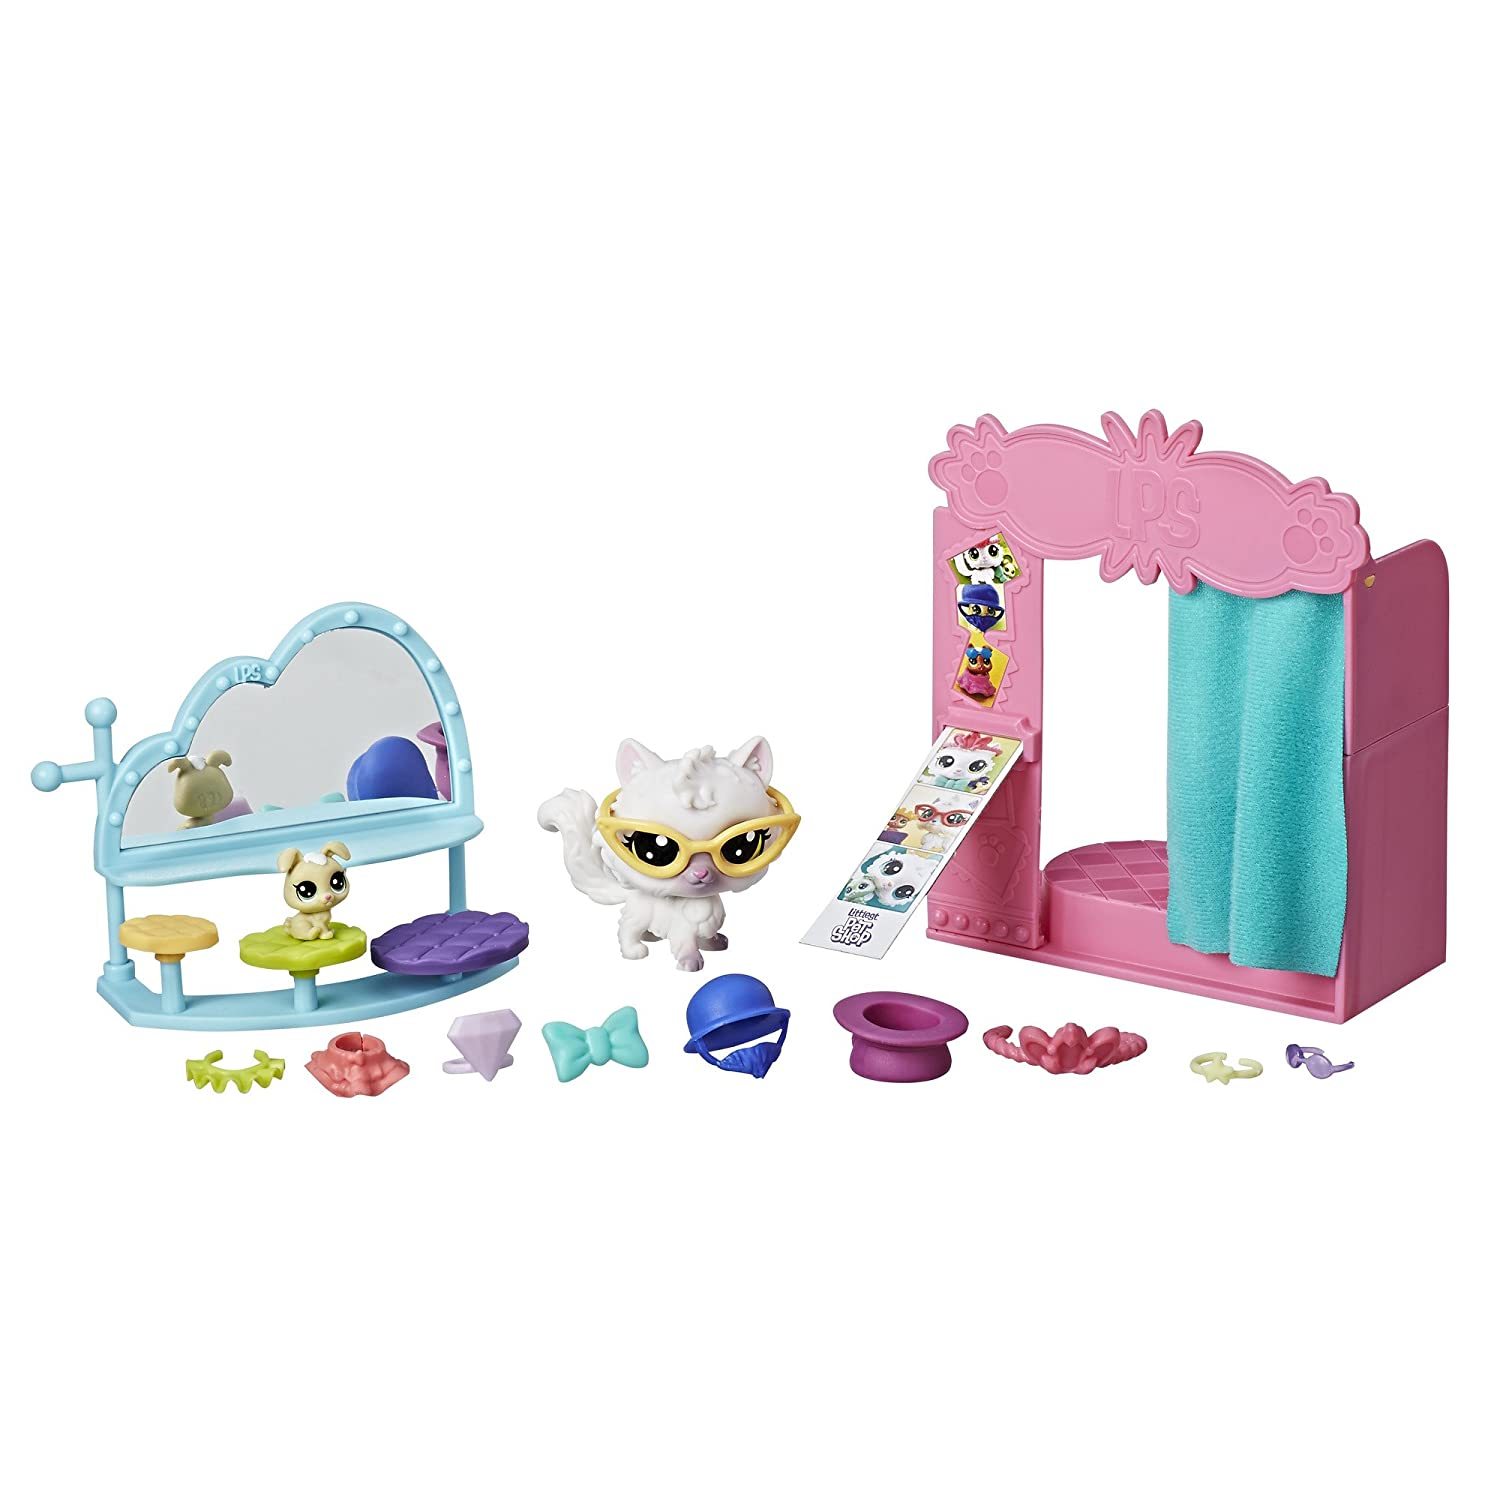 Littlest Pet Shop Flashy Phone Booth Fashion Dolls & Accessories Hasbro E1015